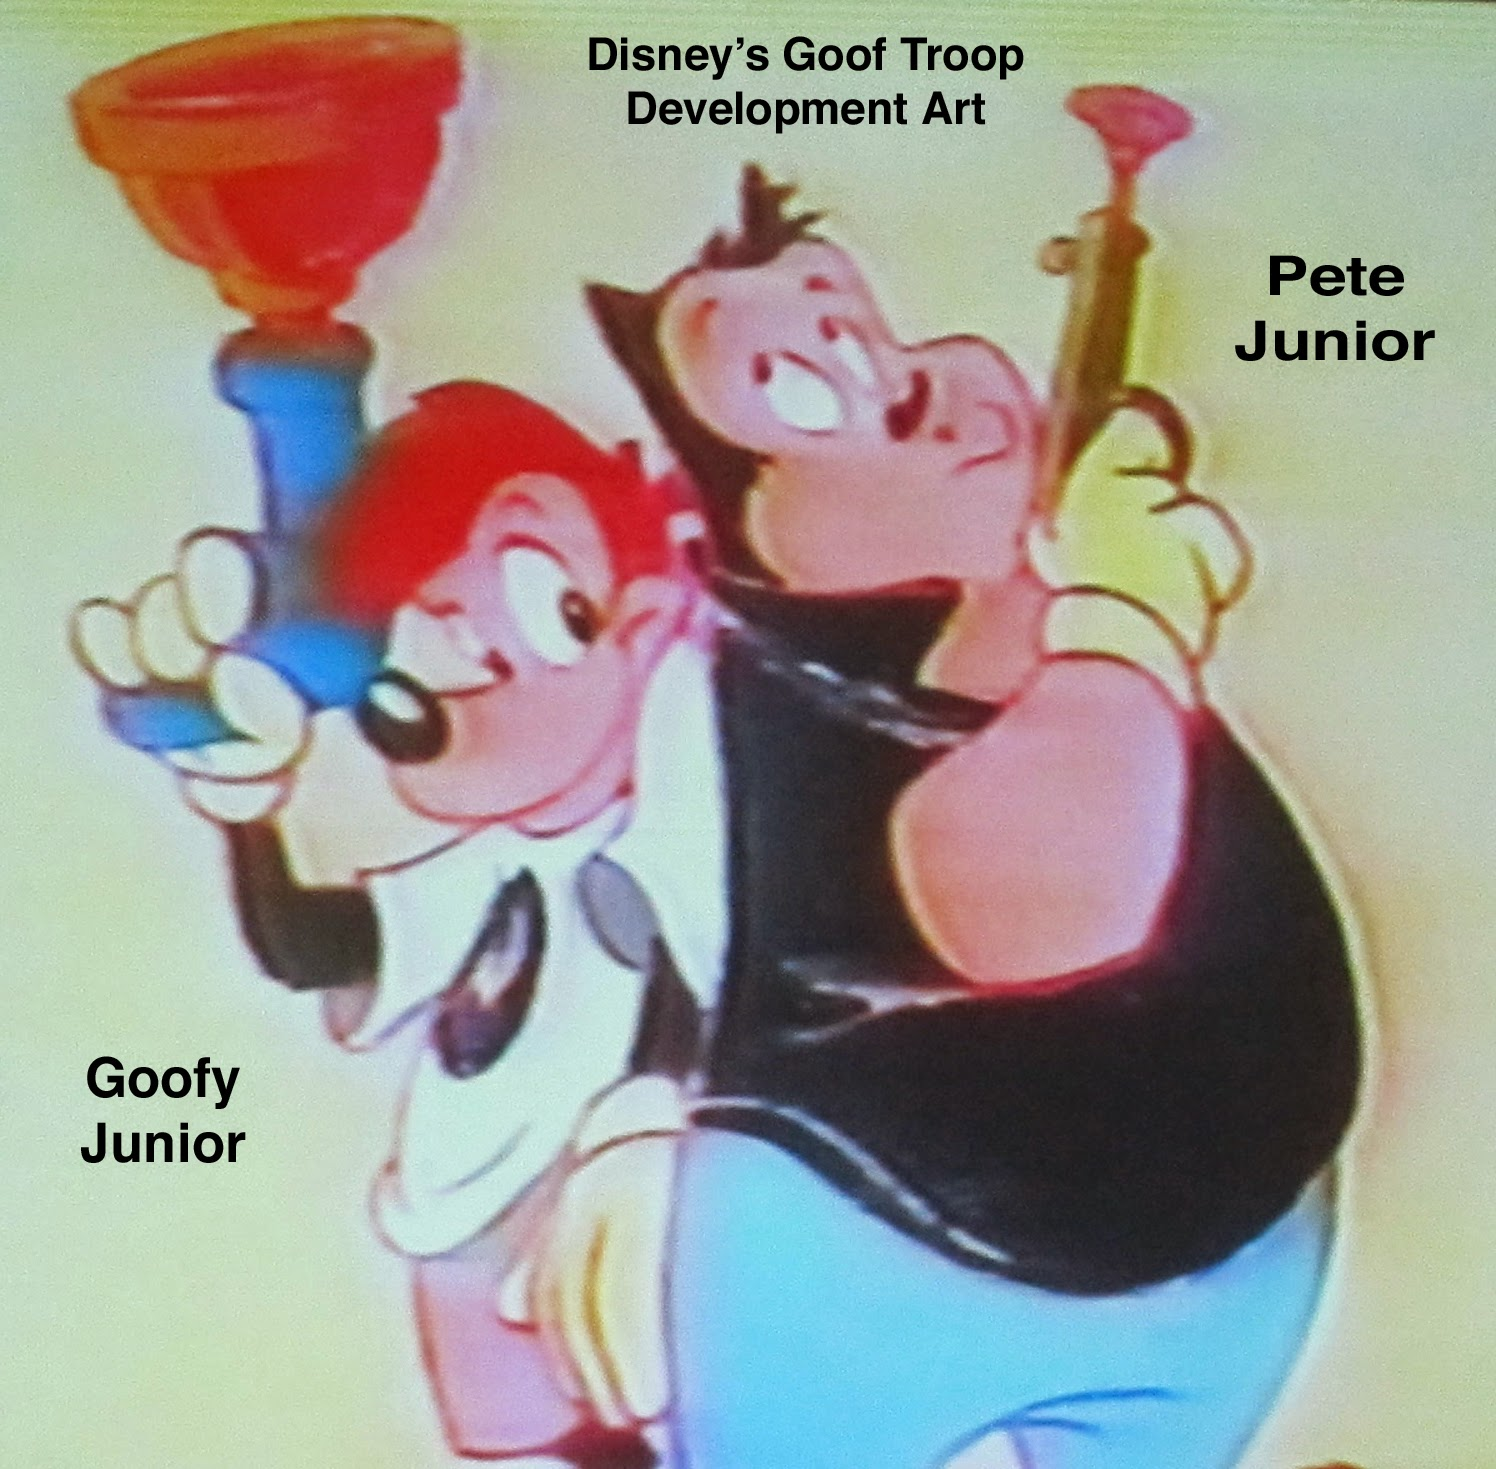 Early Development Art For Goof Troop Reveals That An Older Version Of The Red Headed Goofy Junior From Classic Theatrical Cartoons Had Been